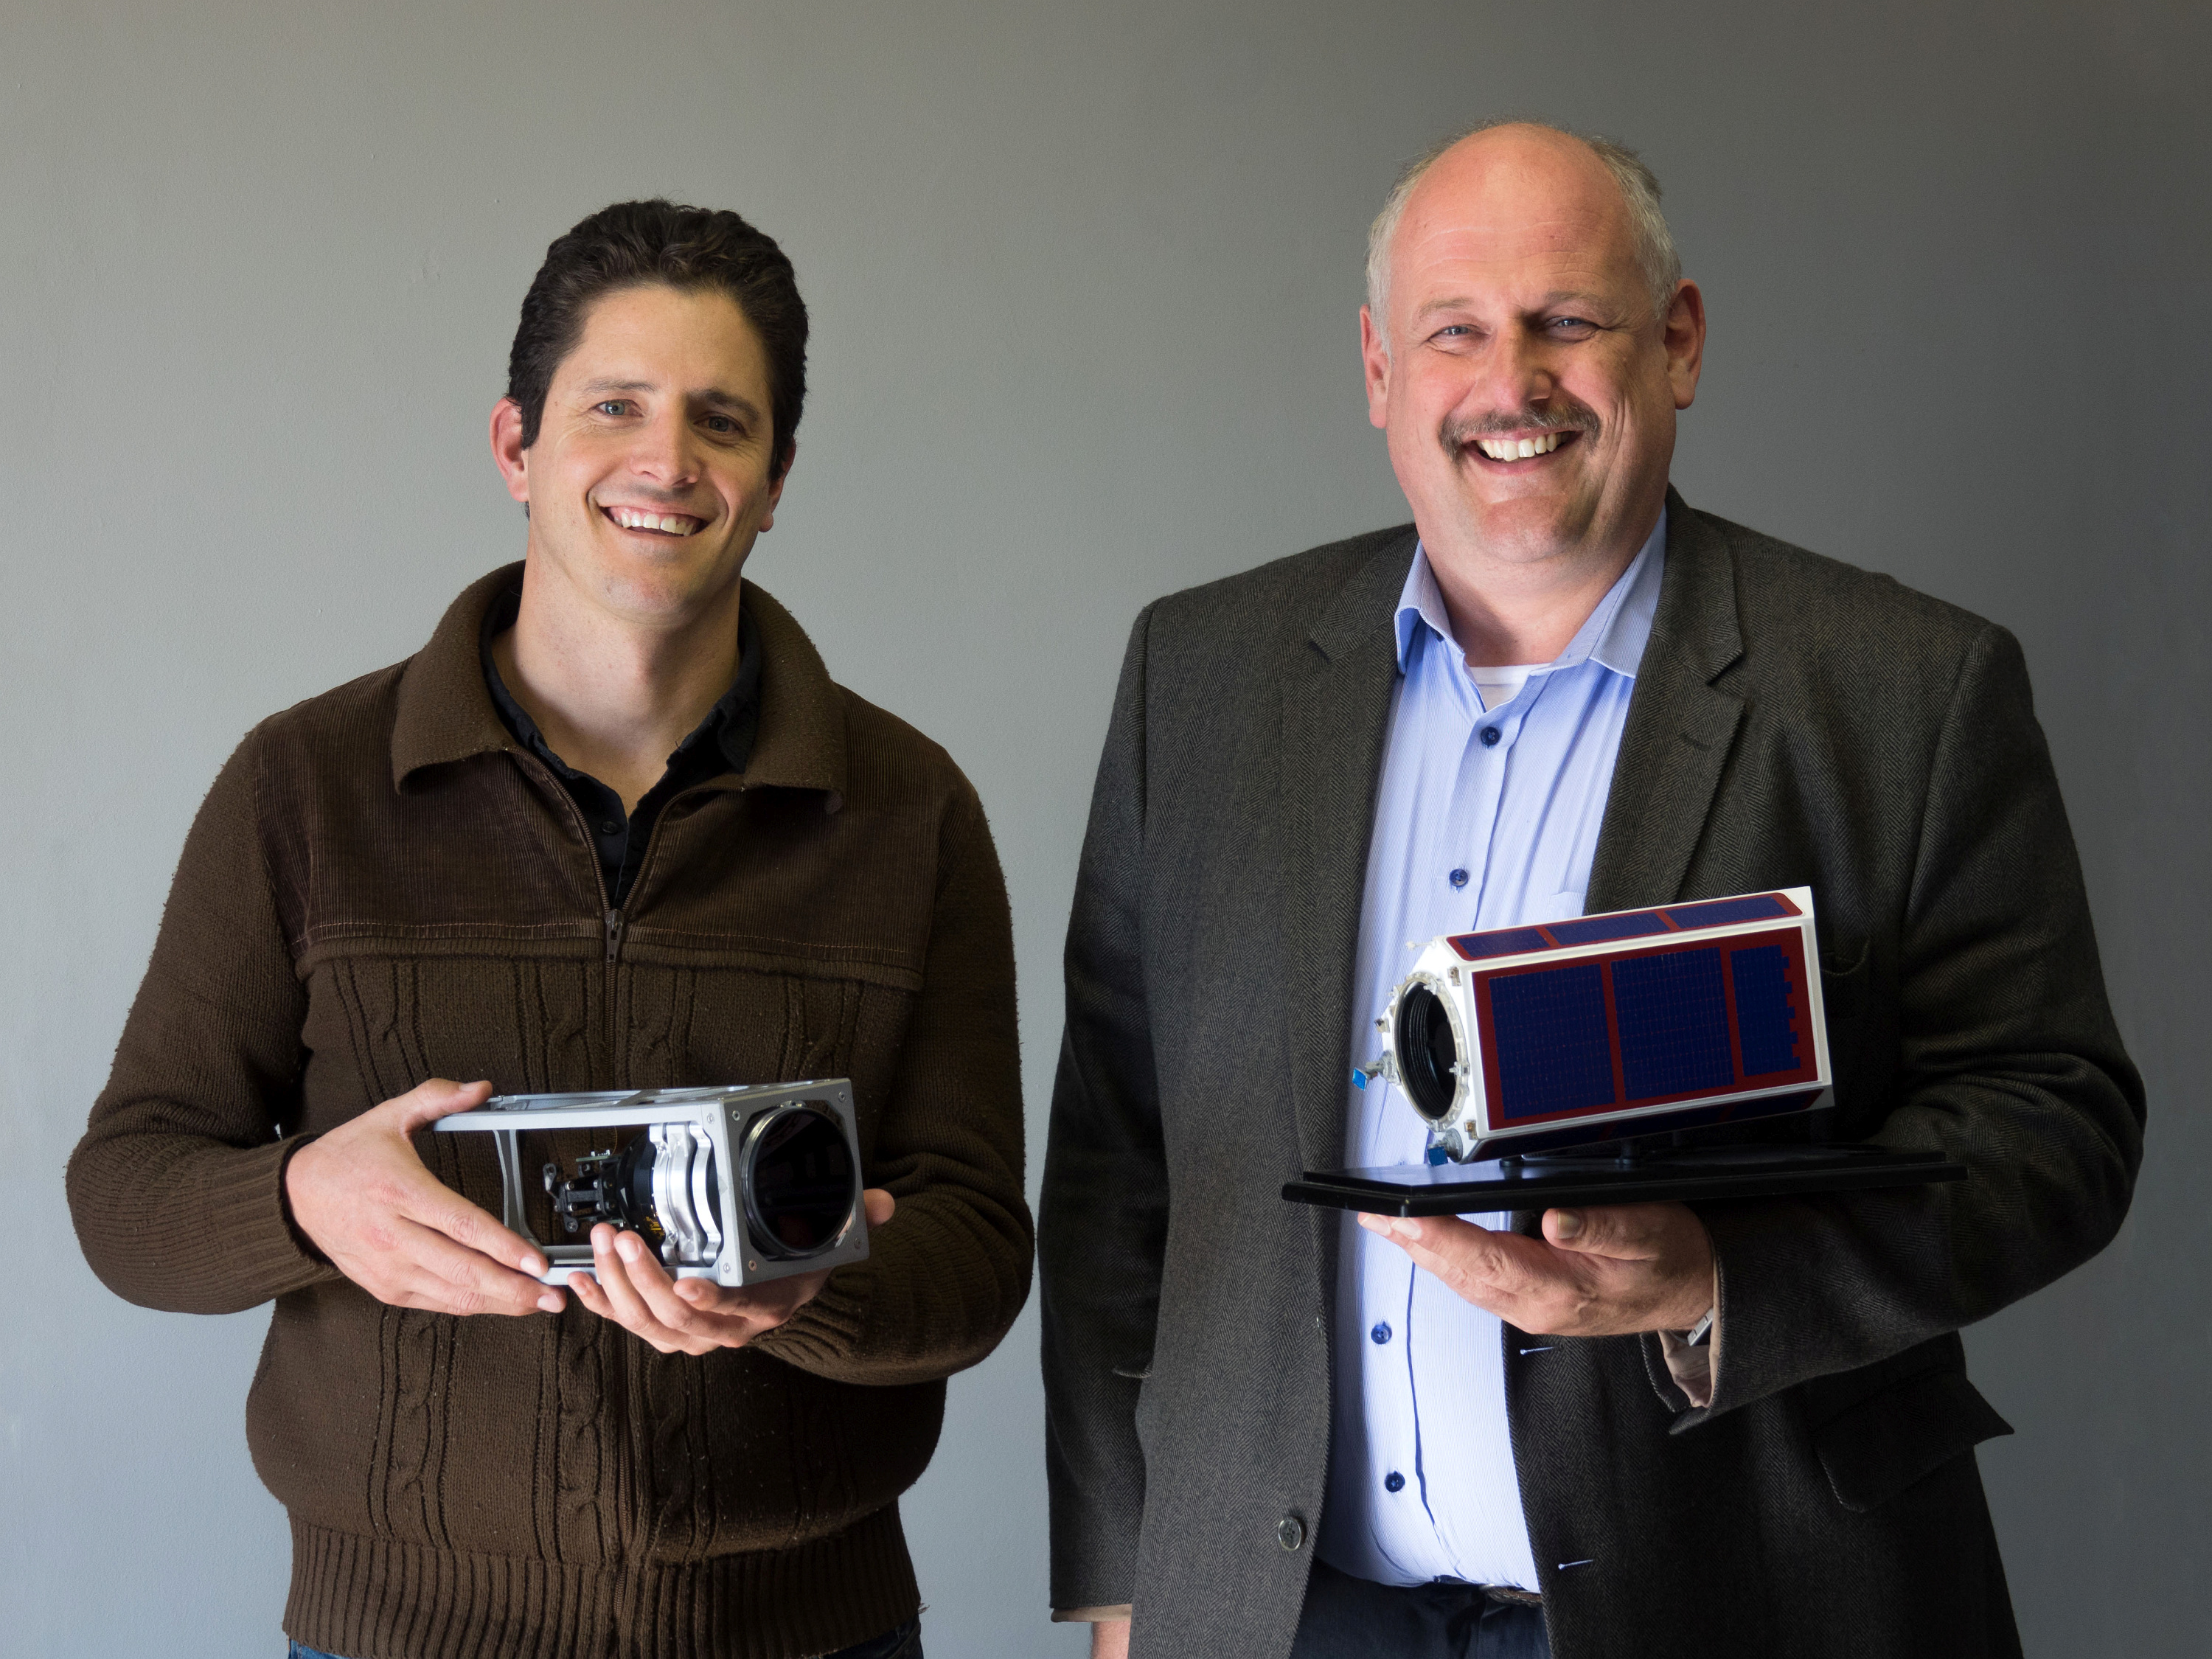 Bryan Dean, systems engineer and Dr. Sias Mostert, Executive Chairman of SCS Aerospace Group show off some of their satellite component models to be displayed and demonstrated at the International Astronautical Congress in Guadalajara, Mexico from 26 – 30 September.